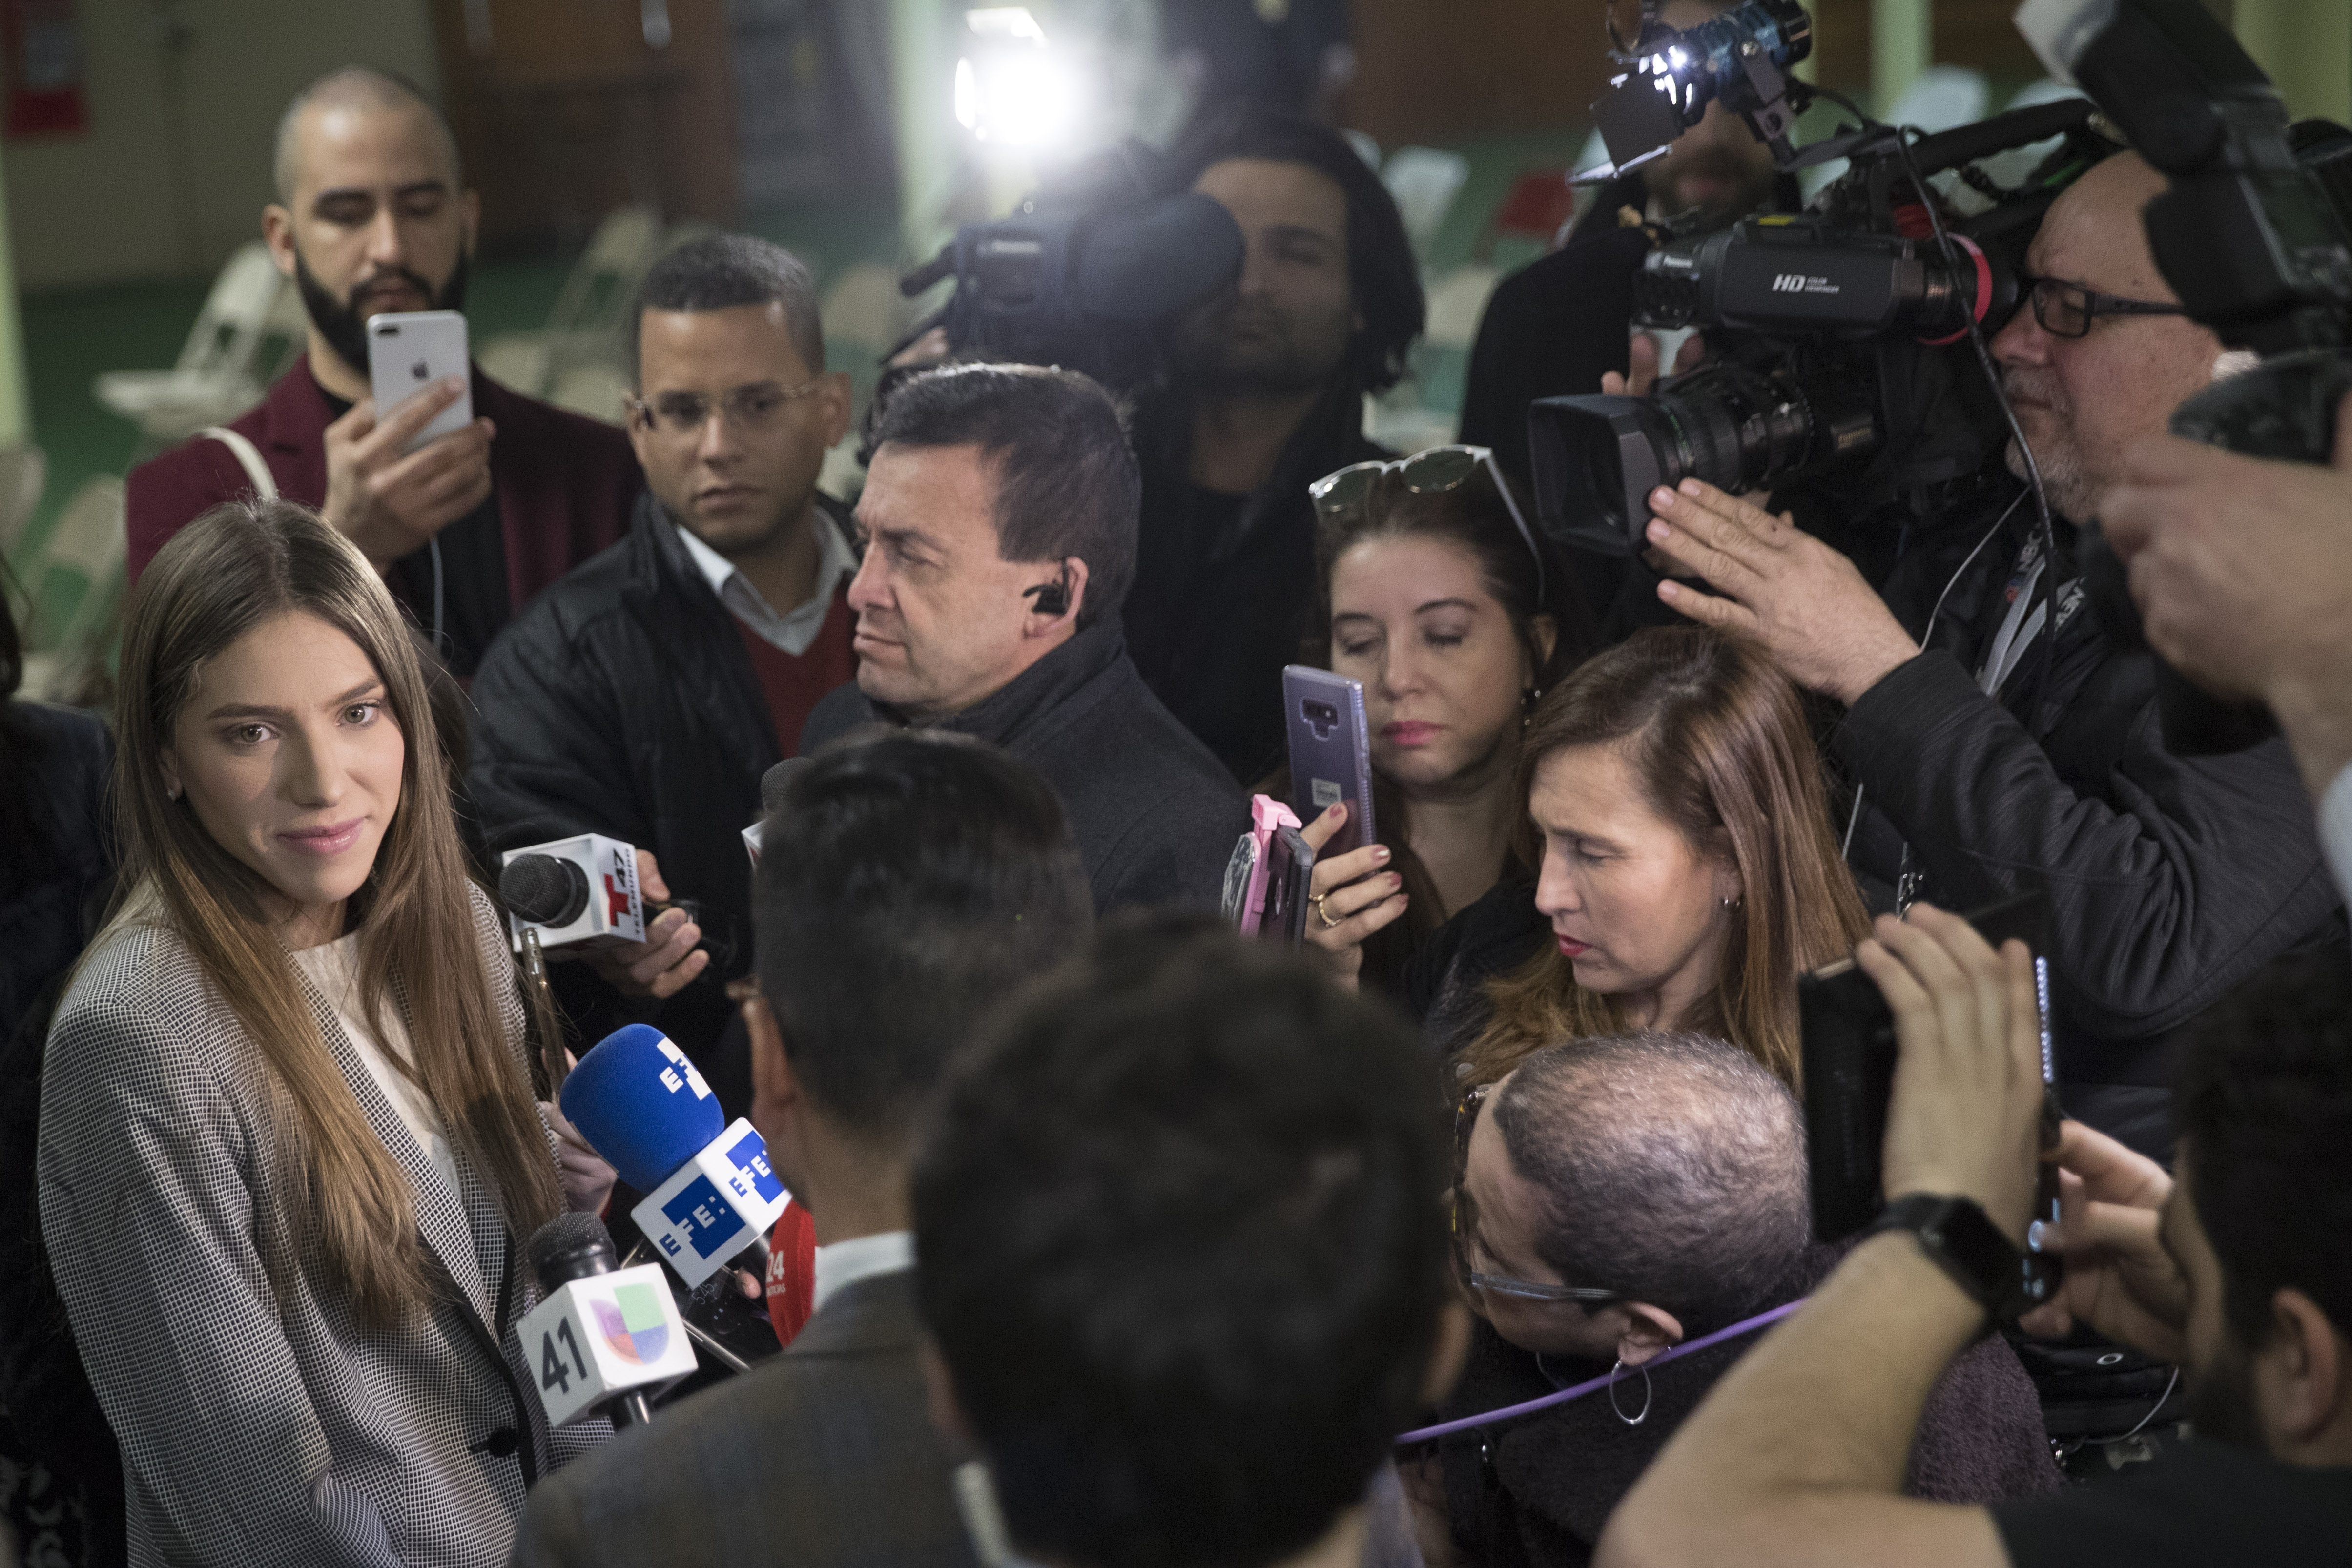 Fabiana Rosales, left, wife of Venezuelan opposition leader Juan Guaido, speaks to reporters before attending Mass at St. Teresa's Church on the Lower East Side of Manhattan, Tuesday, March 26, 2019, in New York. Rosales is emerging as a prominent figure in Guaido's campaign to bring change in the crisis-wracked country. (AP Photo/Mary Altaffer)